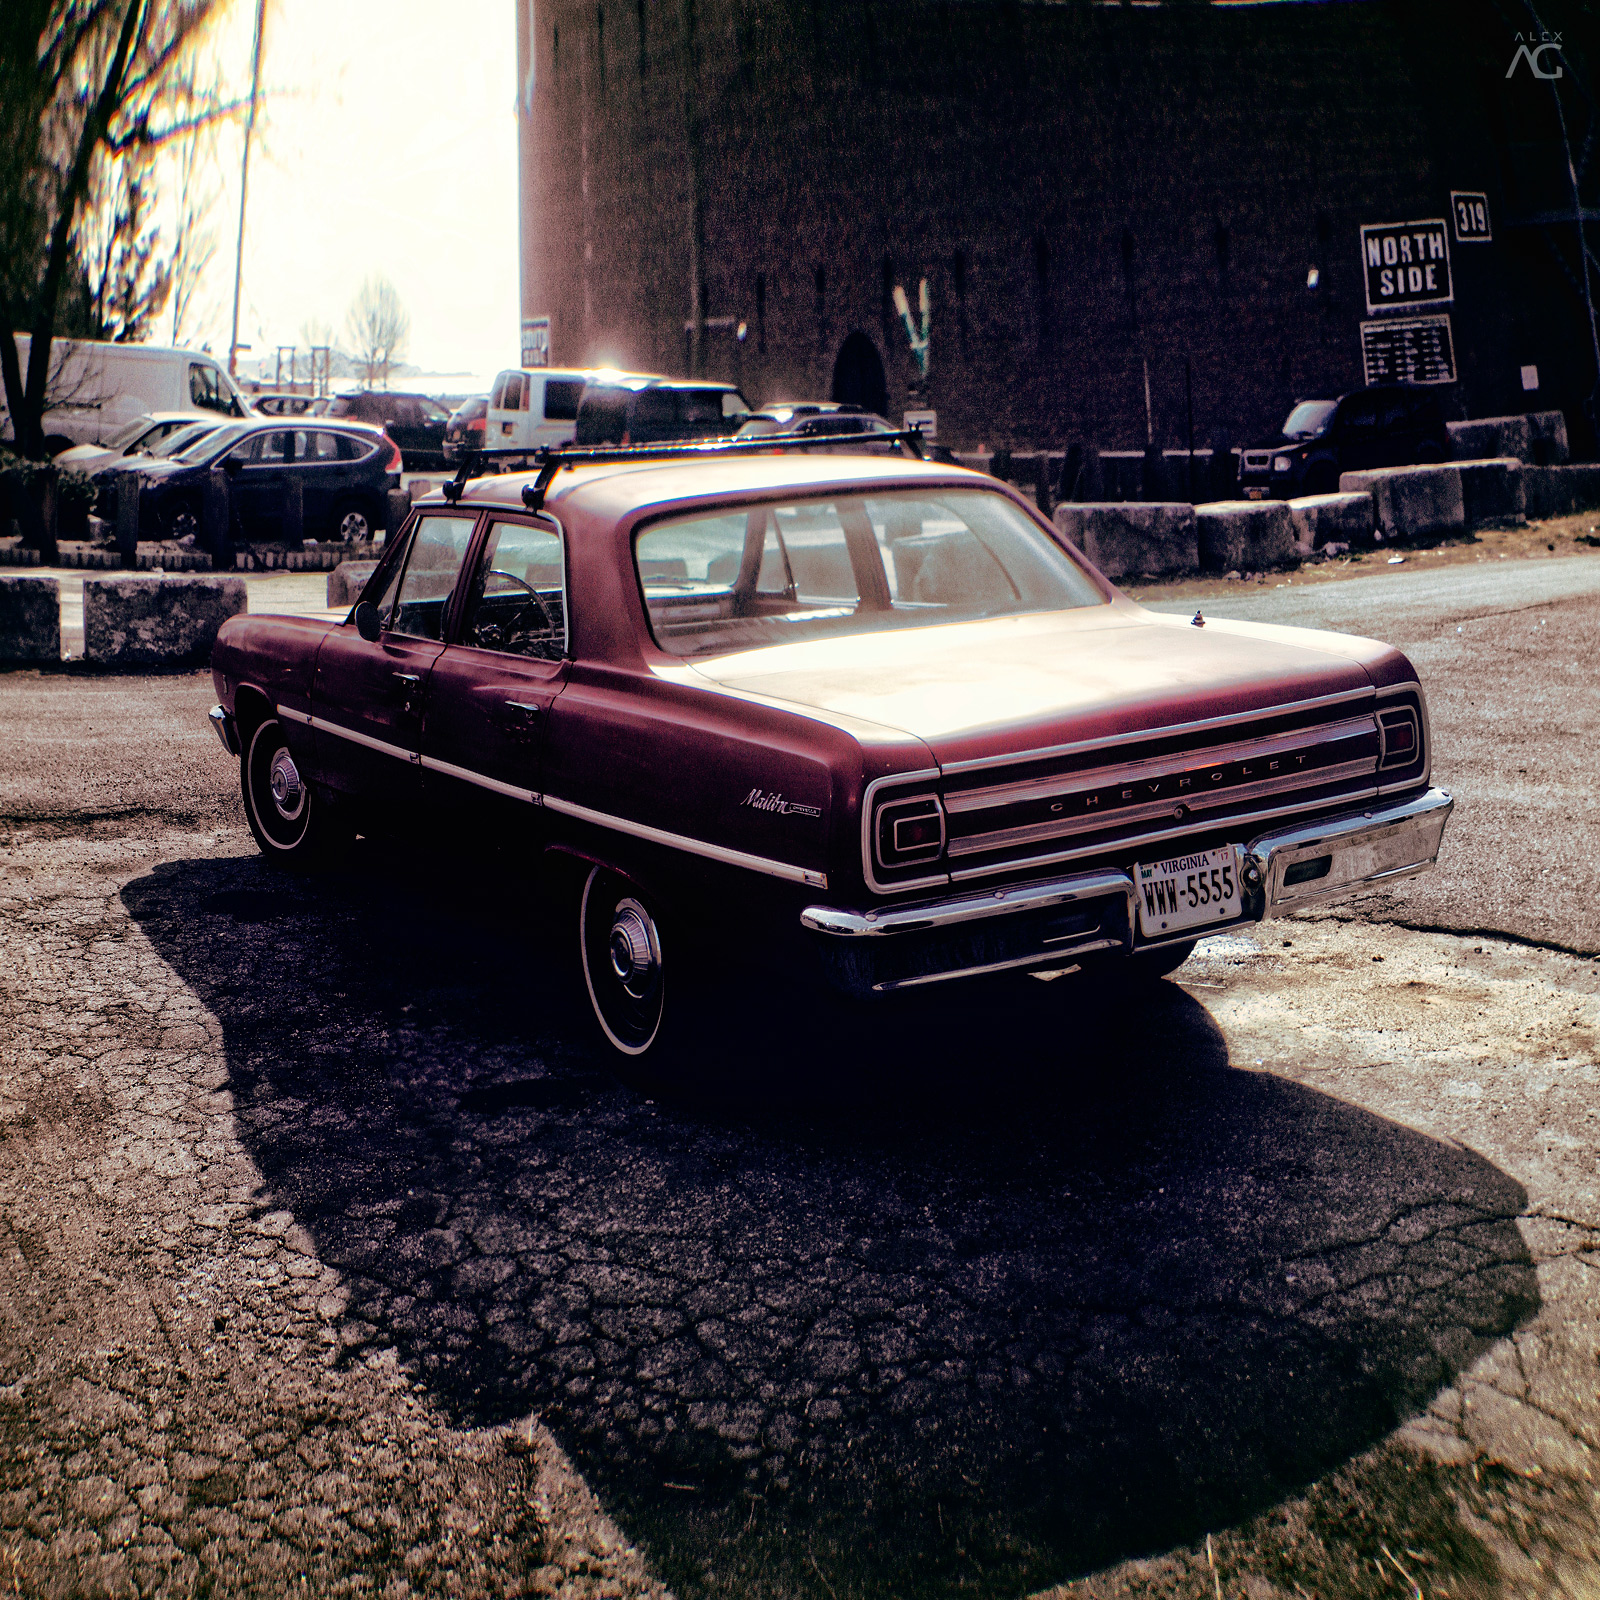 RedChevroletUnderTheBrightSunInRedHook_ROmanika_14K_warped_1600